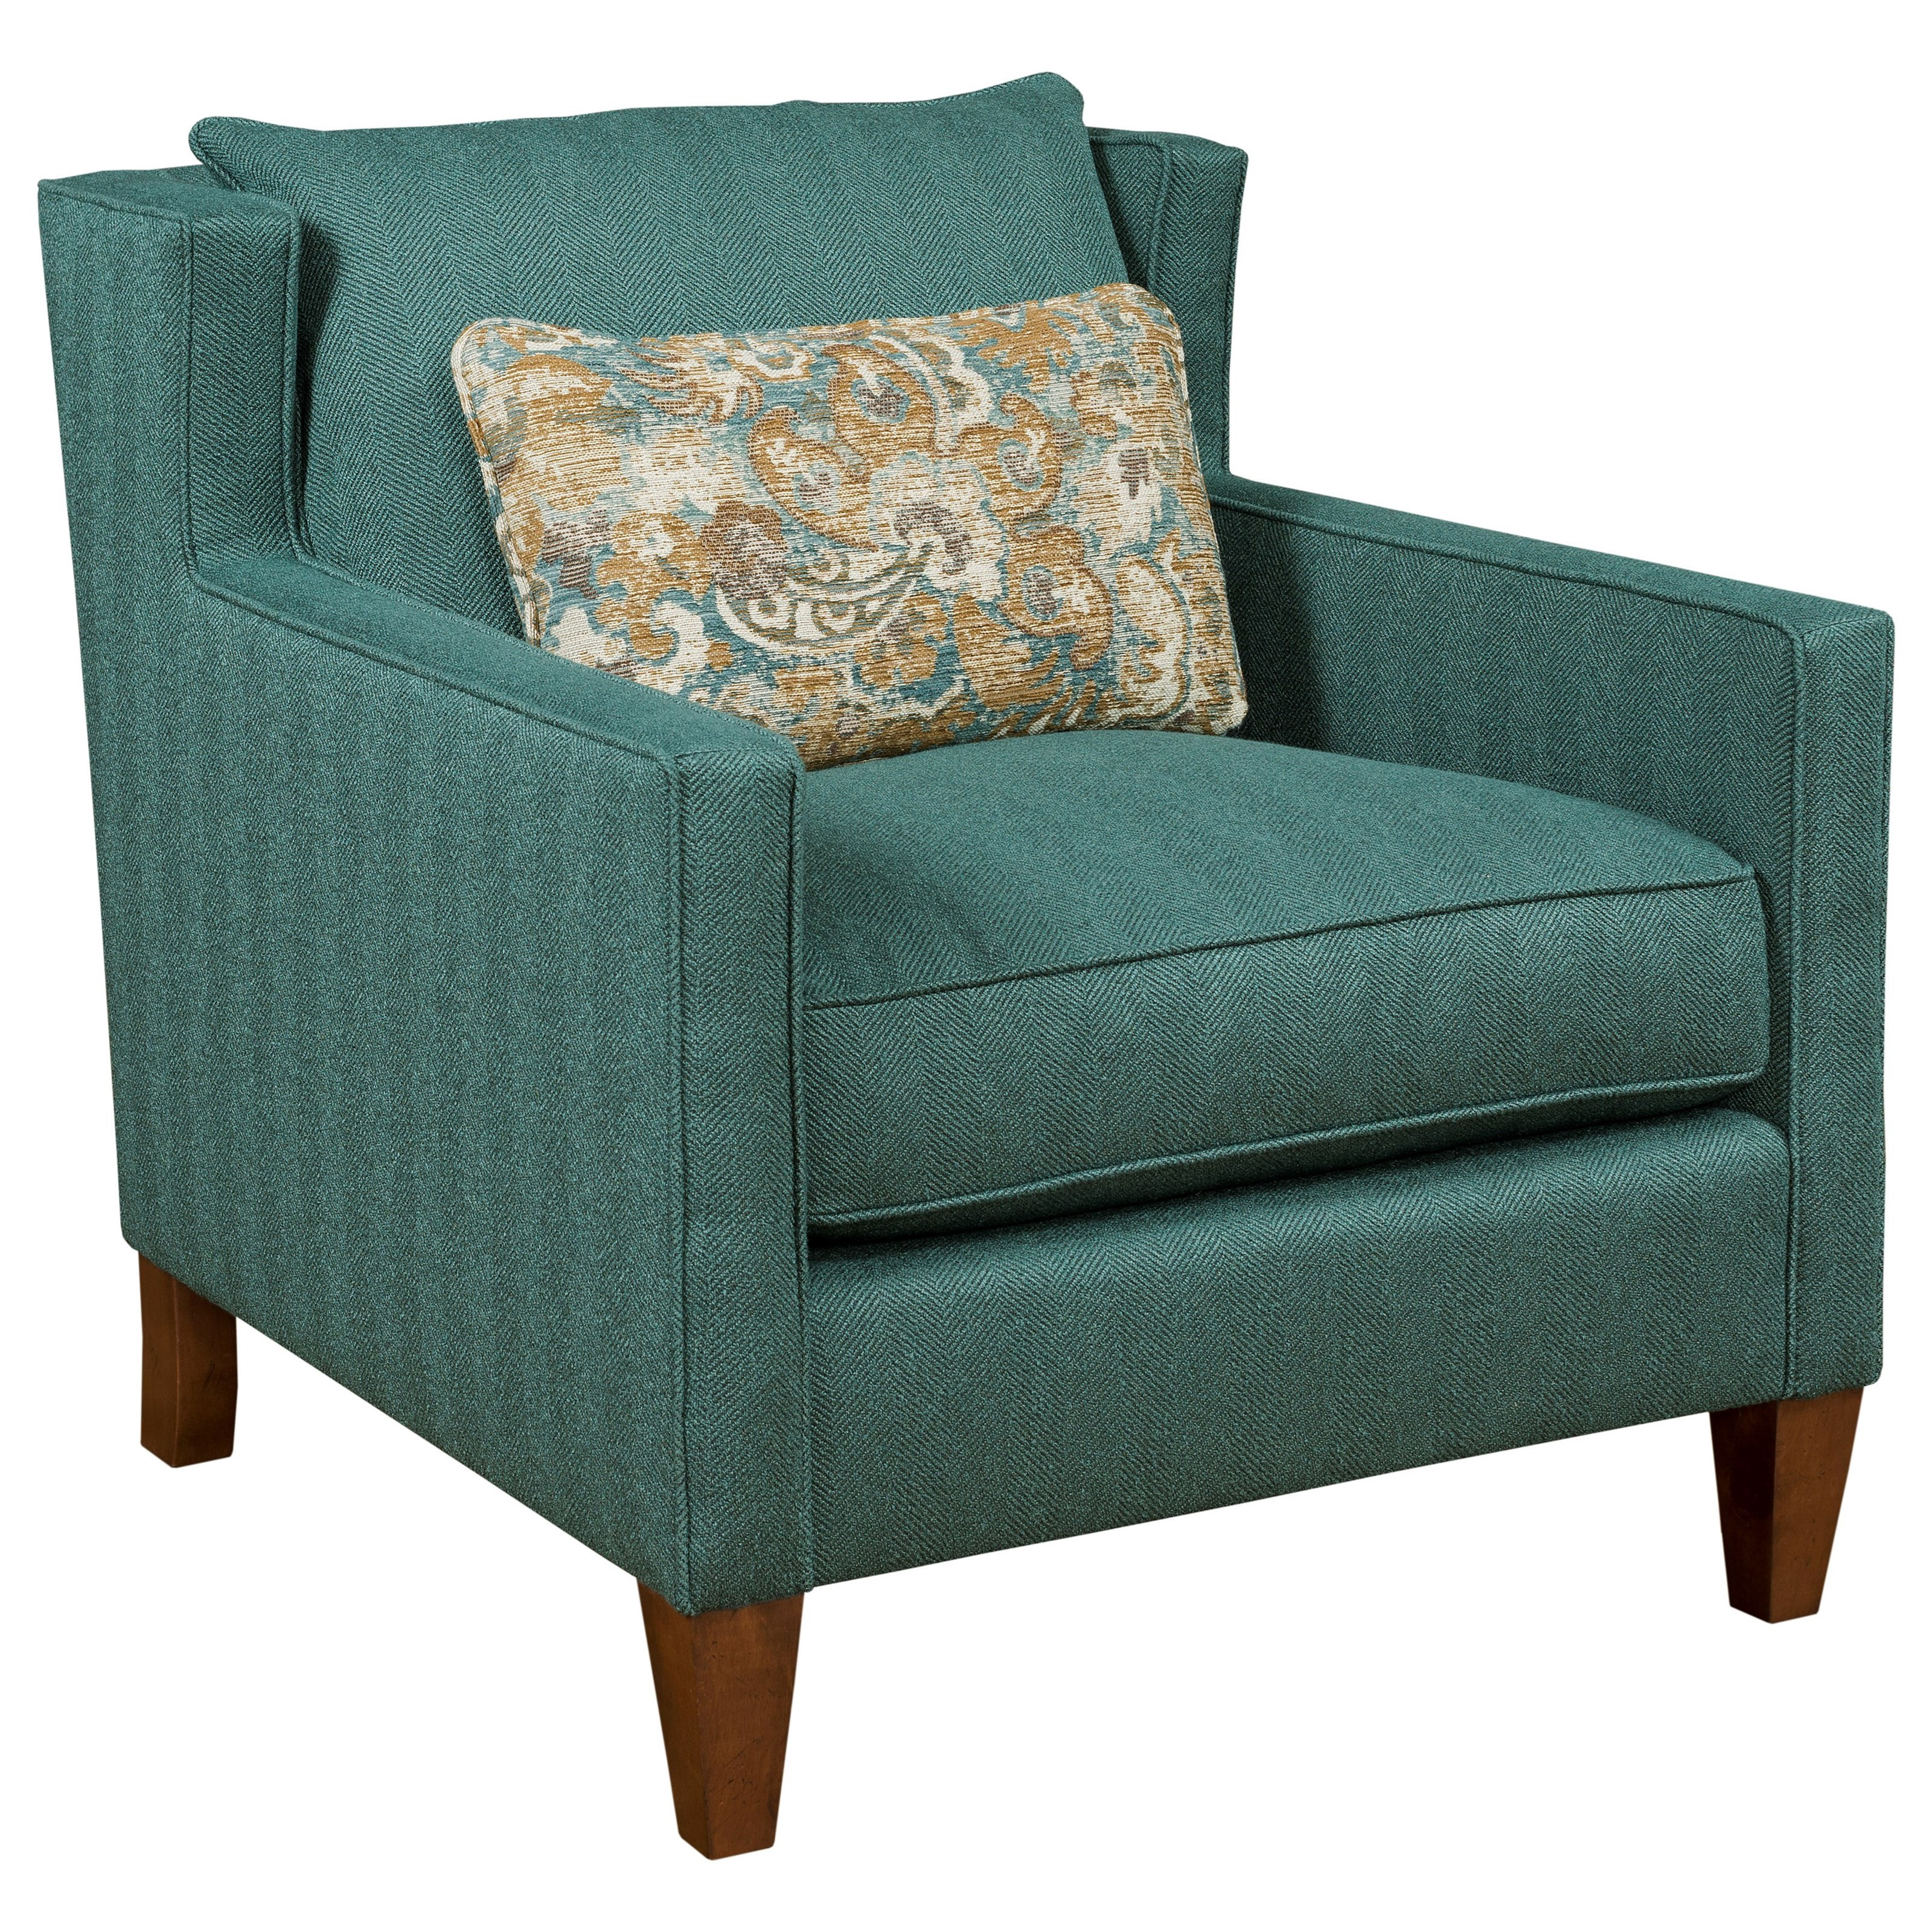 Alta Upholstered Chair by Kincaid Furniture at Powell's Furniture and Mattress